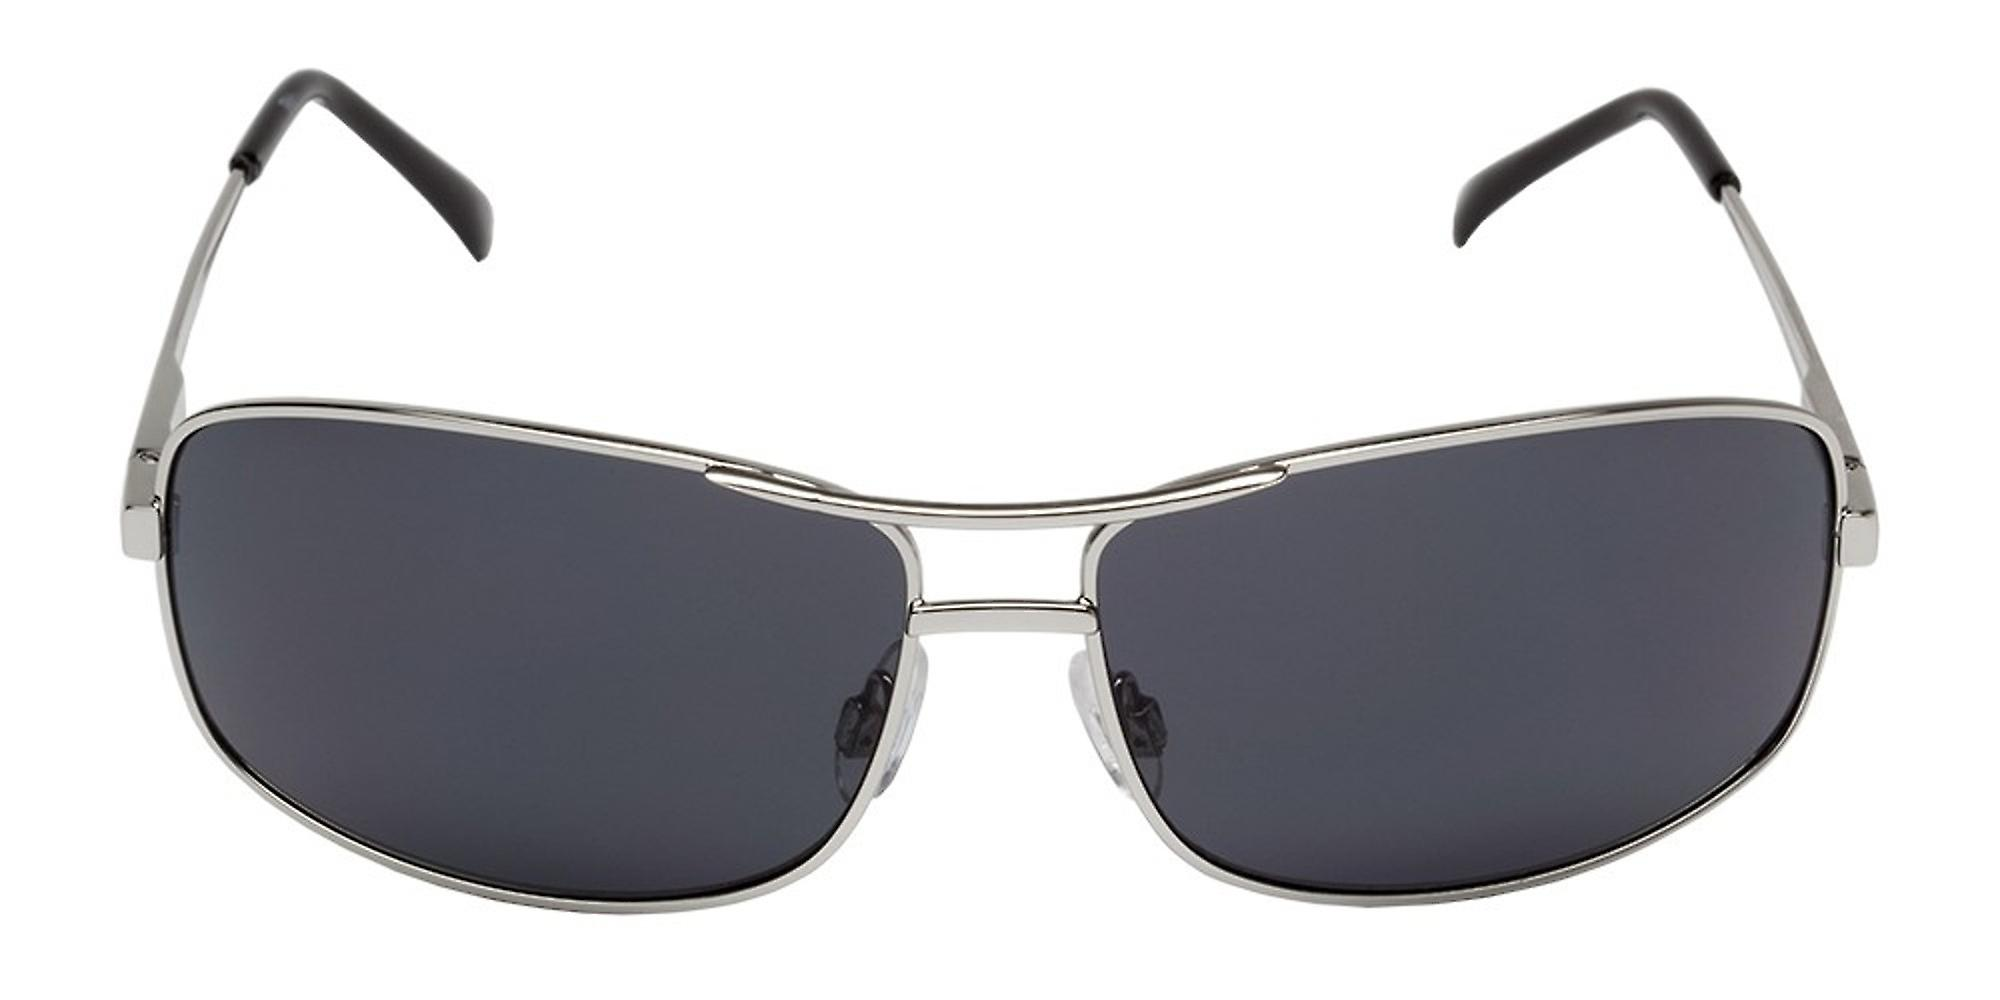 Classic sunglasses for men by Carlo Monti with 100% UV protection | sturdy metal frame, high quality sunglasses case, microfiber glasses pouch and 2 year warranty | SCM116-112 San Remo